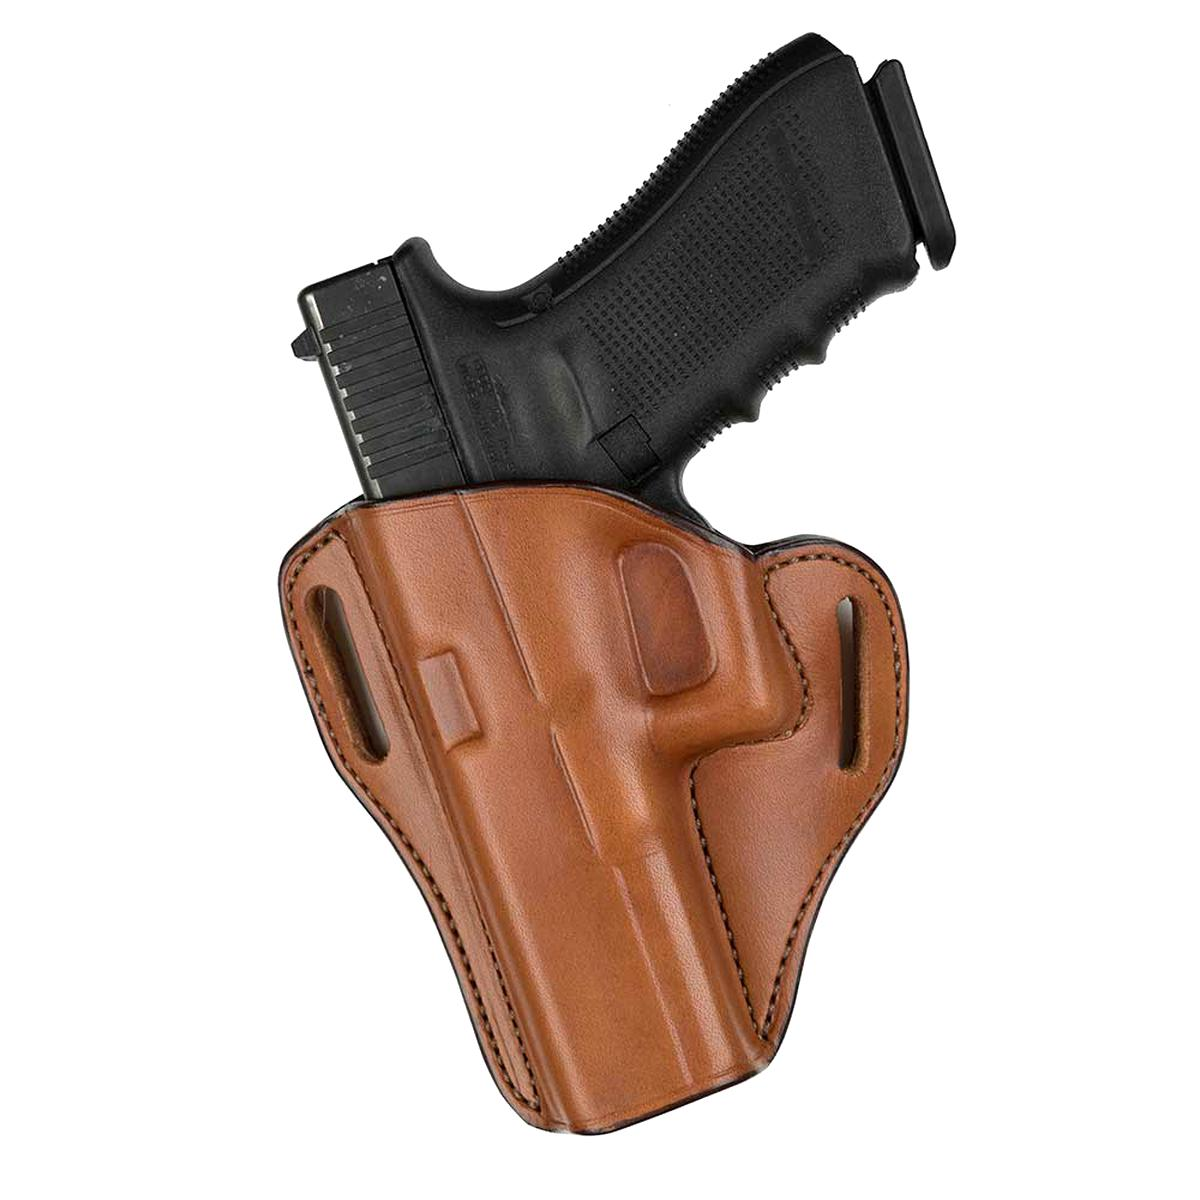 holster bianchi d'occasion